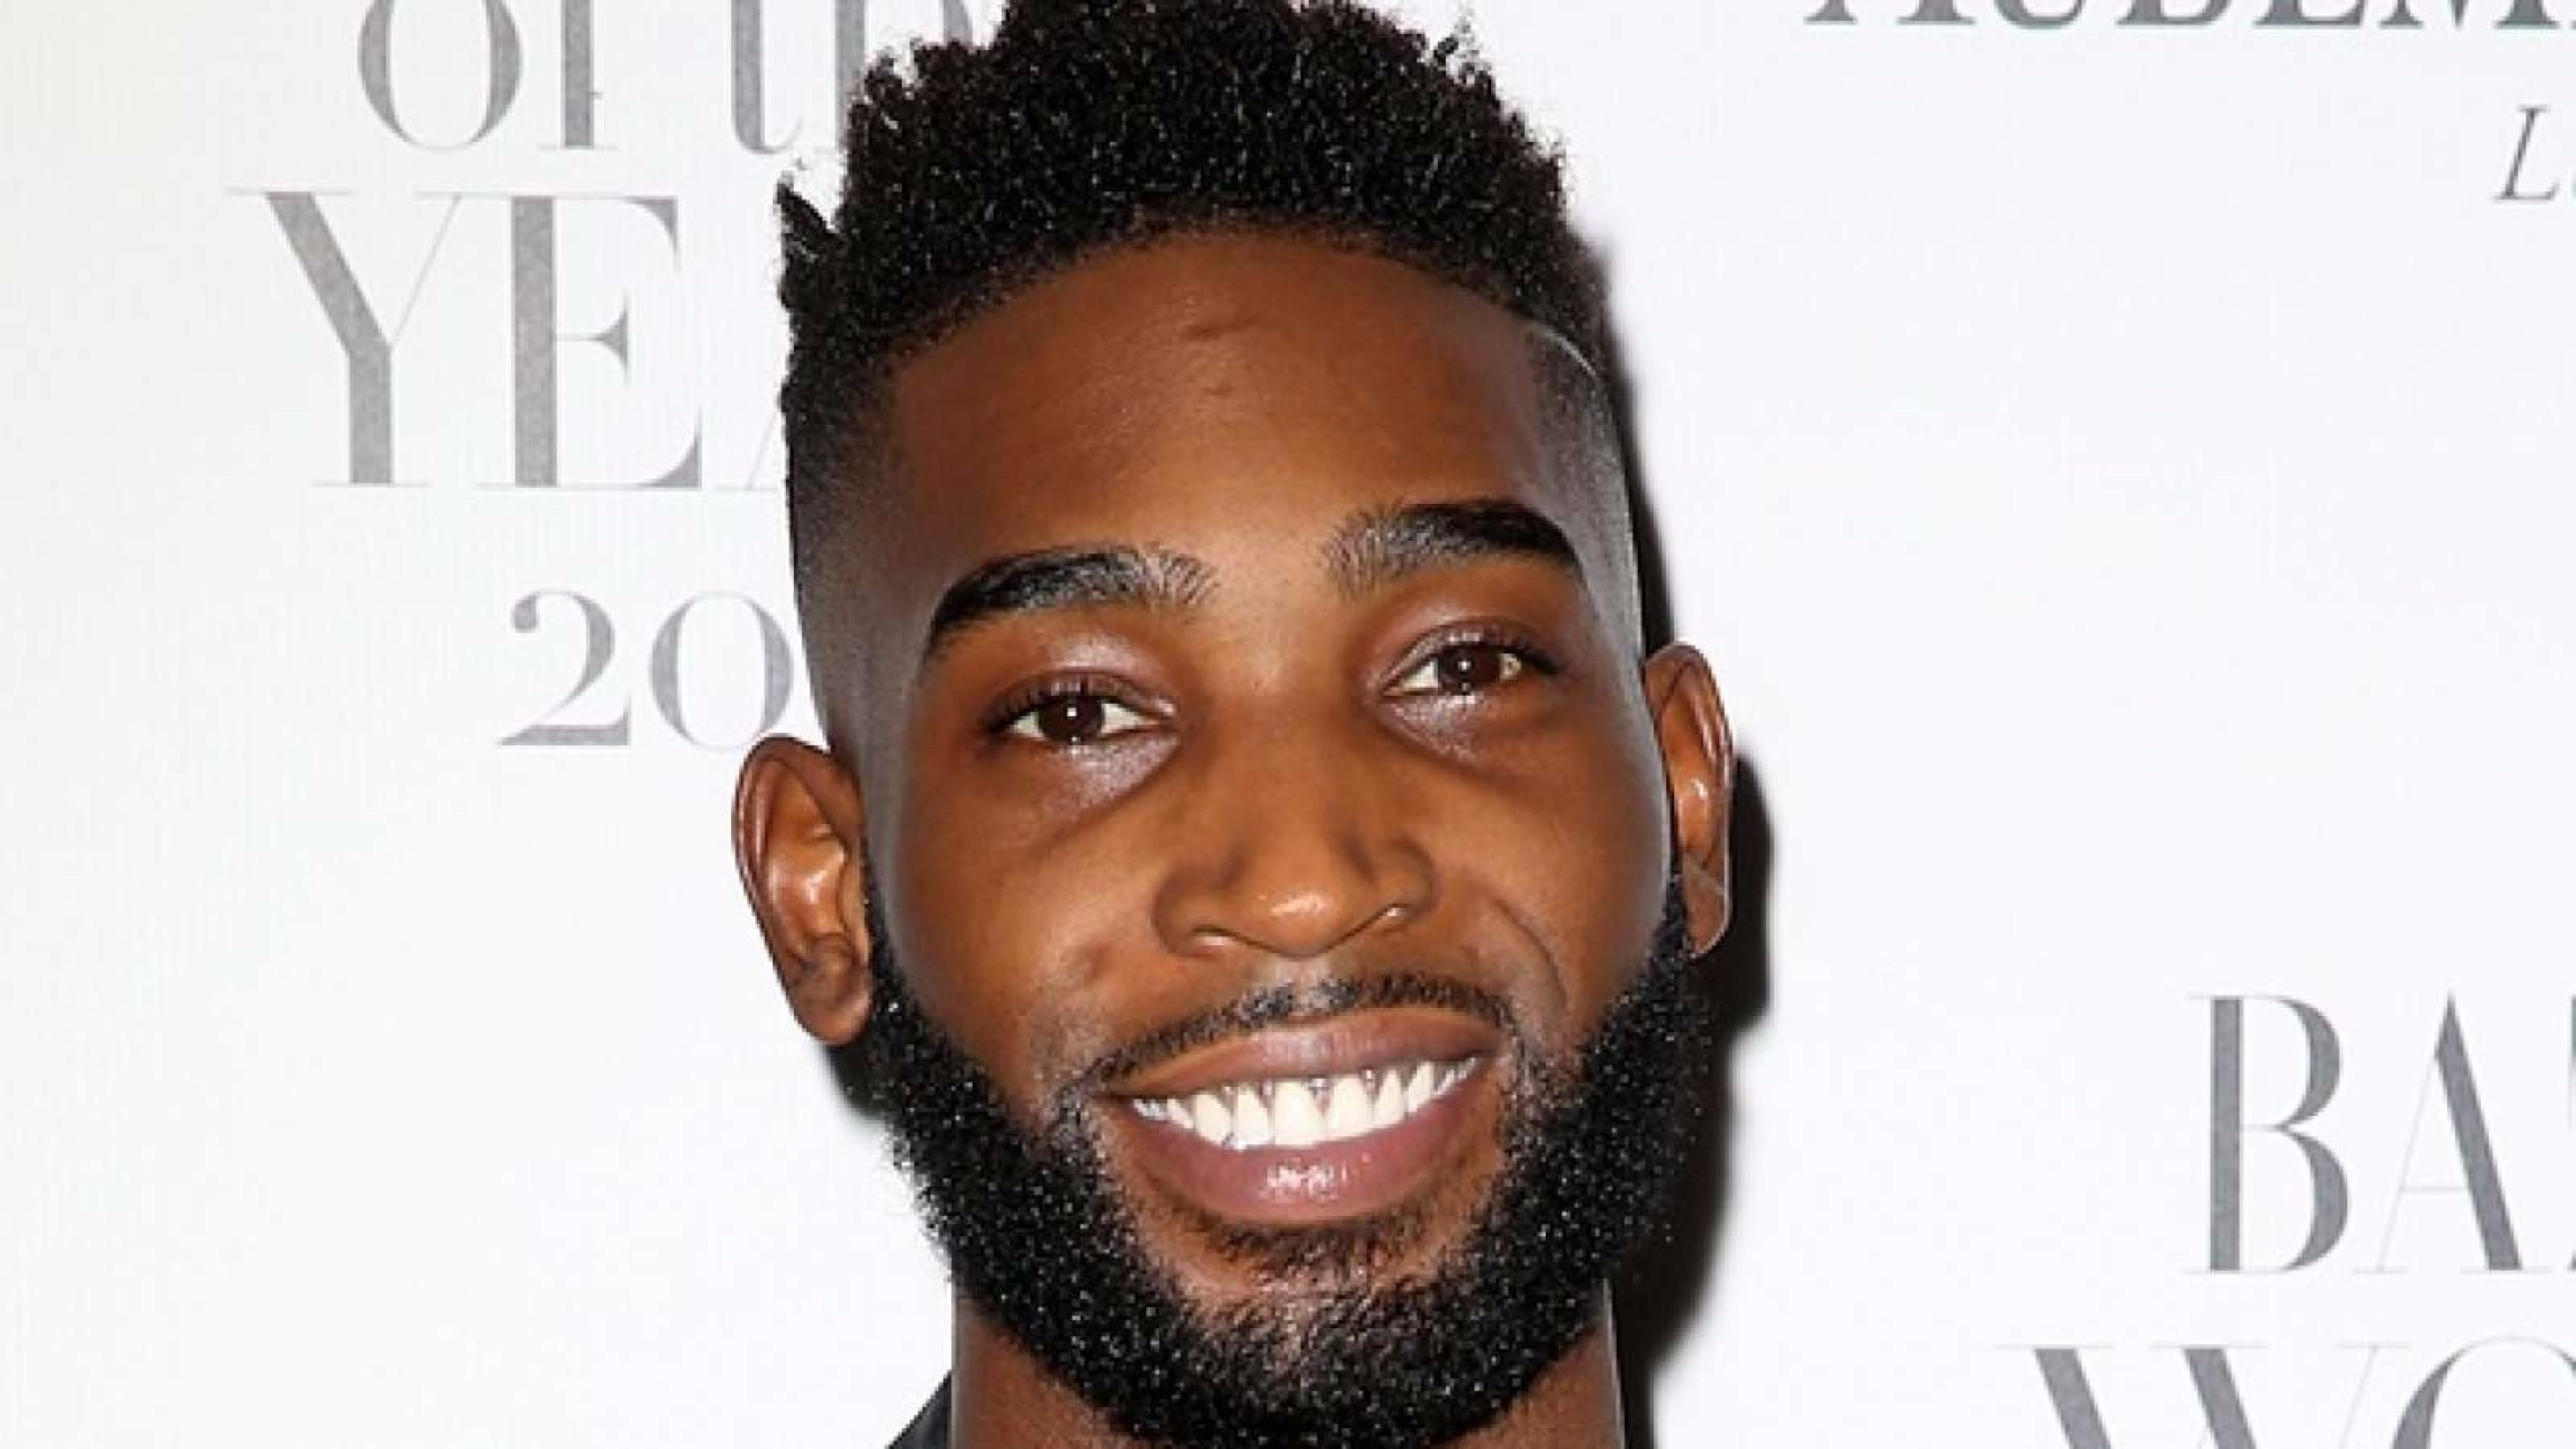 Tinie Tempah Computer Backgrounds